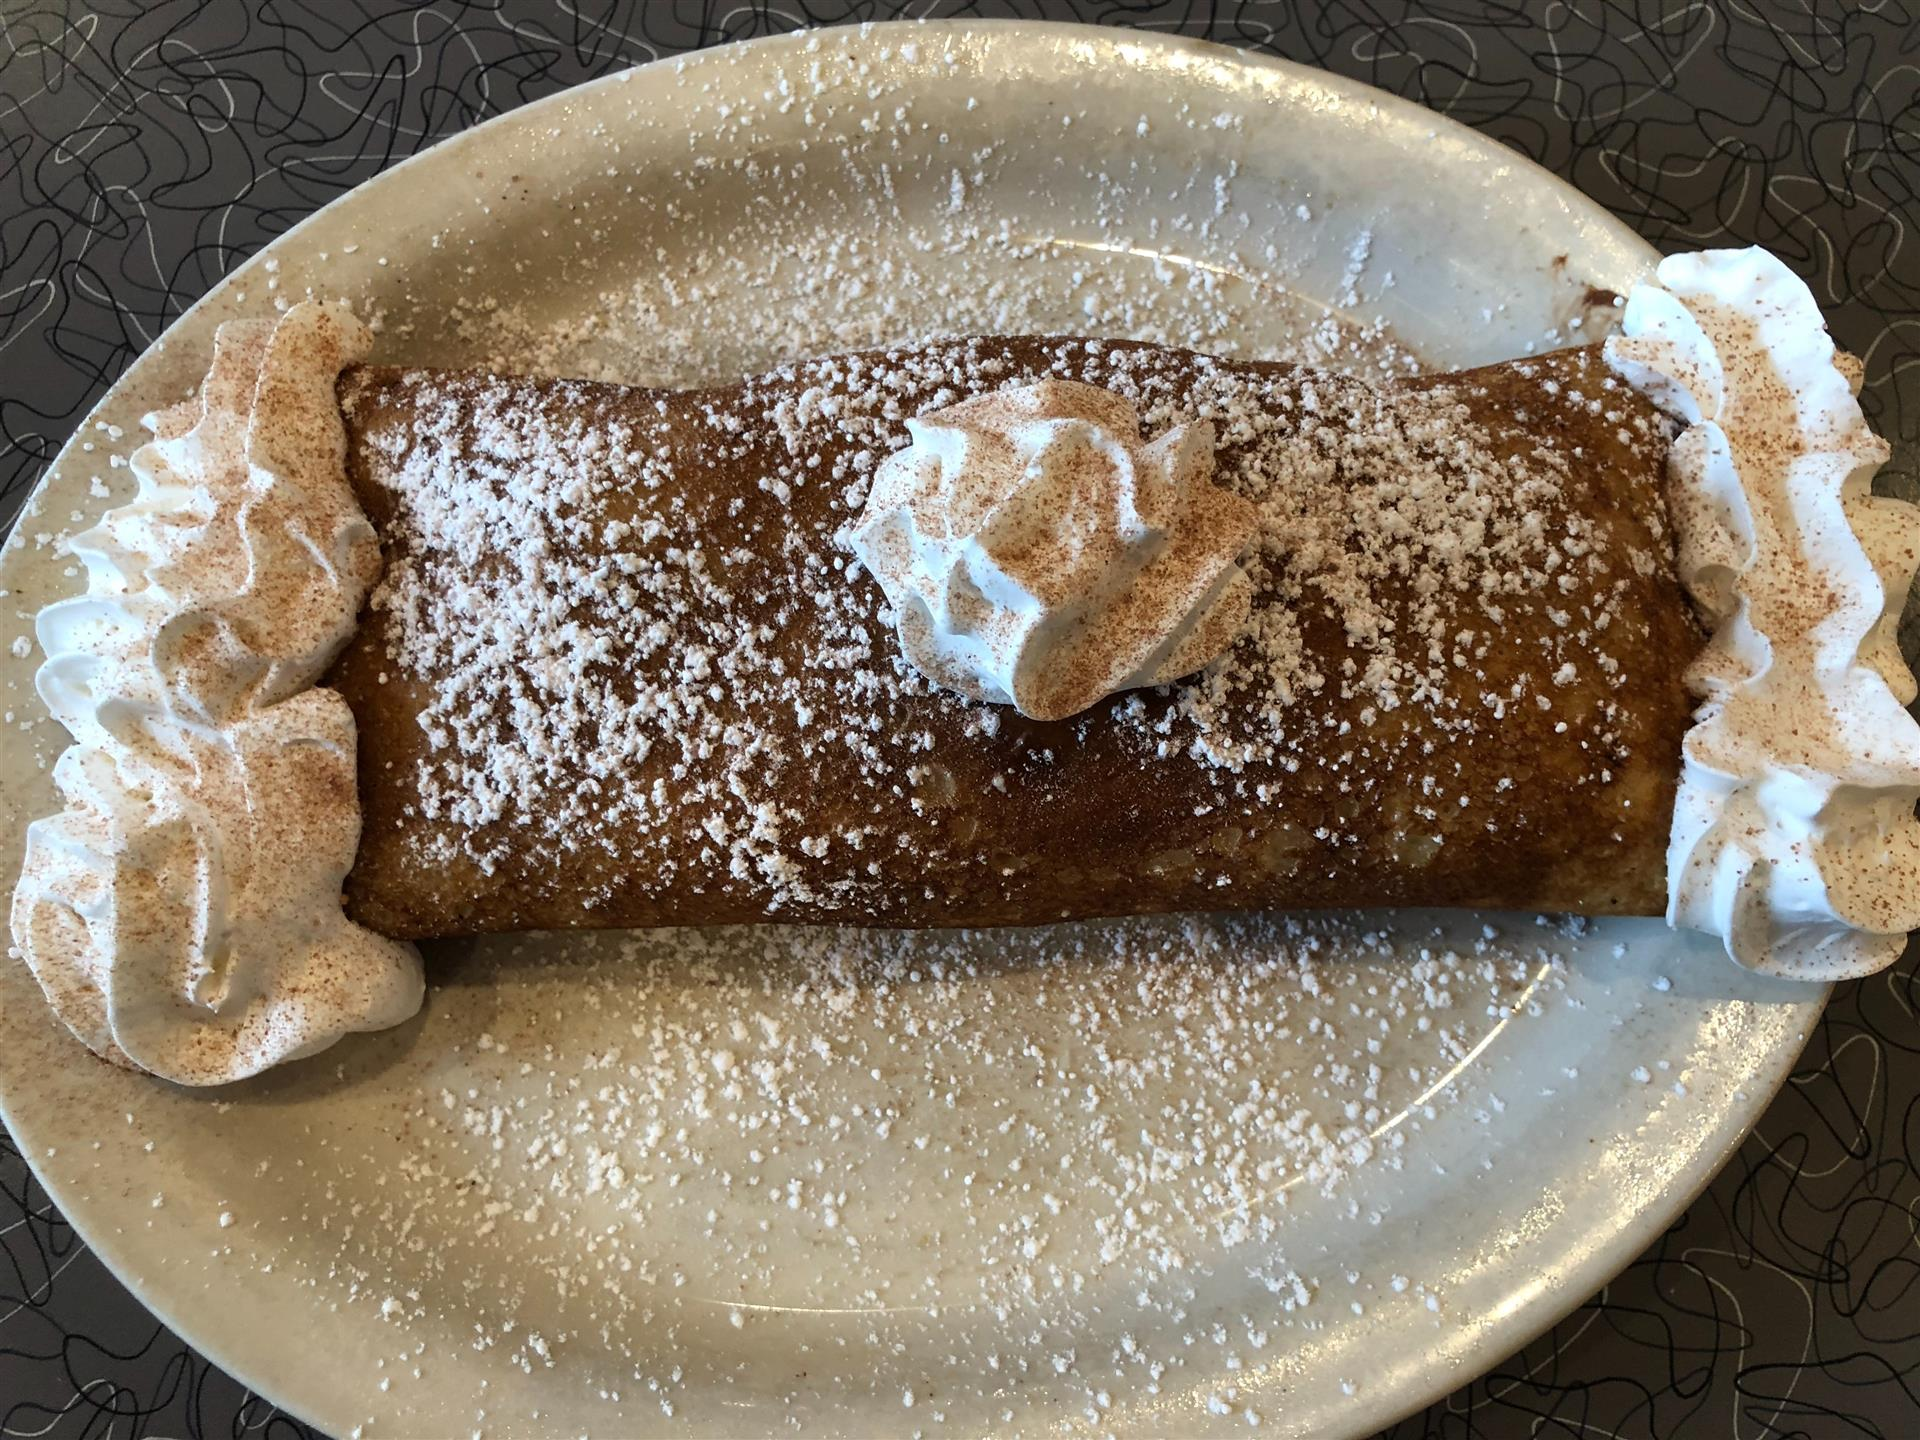 a breakfast crepe covered in whipped cream and powdered sugar